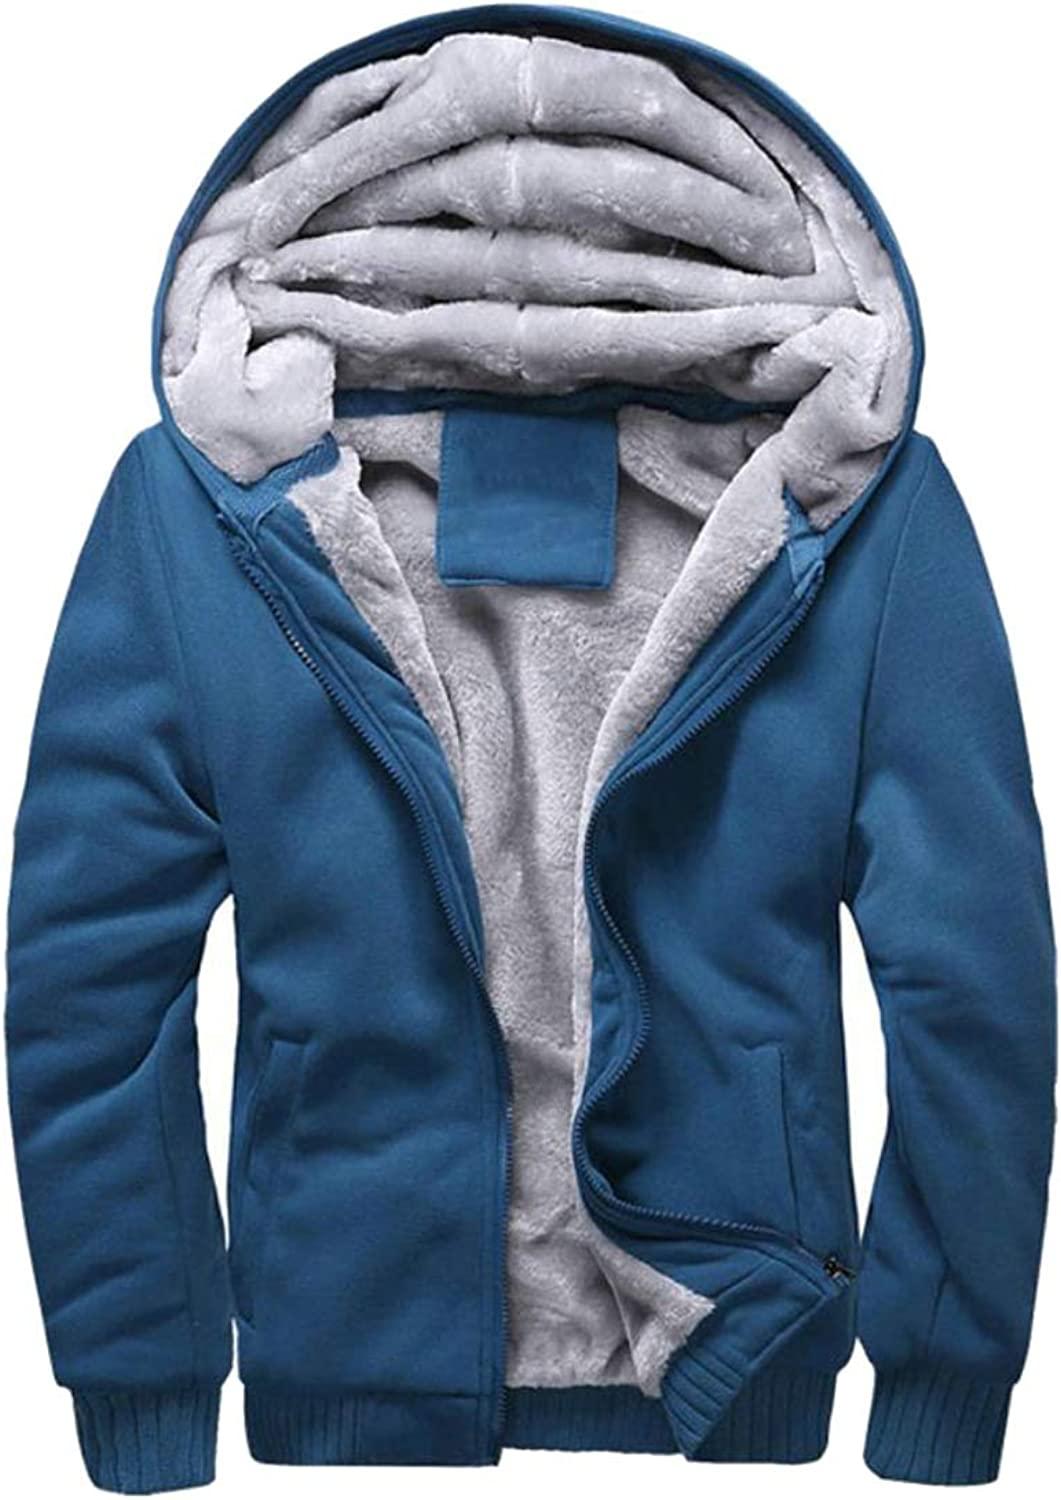 Cromoncent Men Warm Solid color Thick Sweatshirt Long Sleeve Hoodies Fall Winter Cardigan Casual Plush Jacket